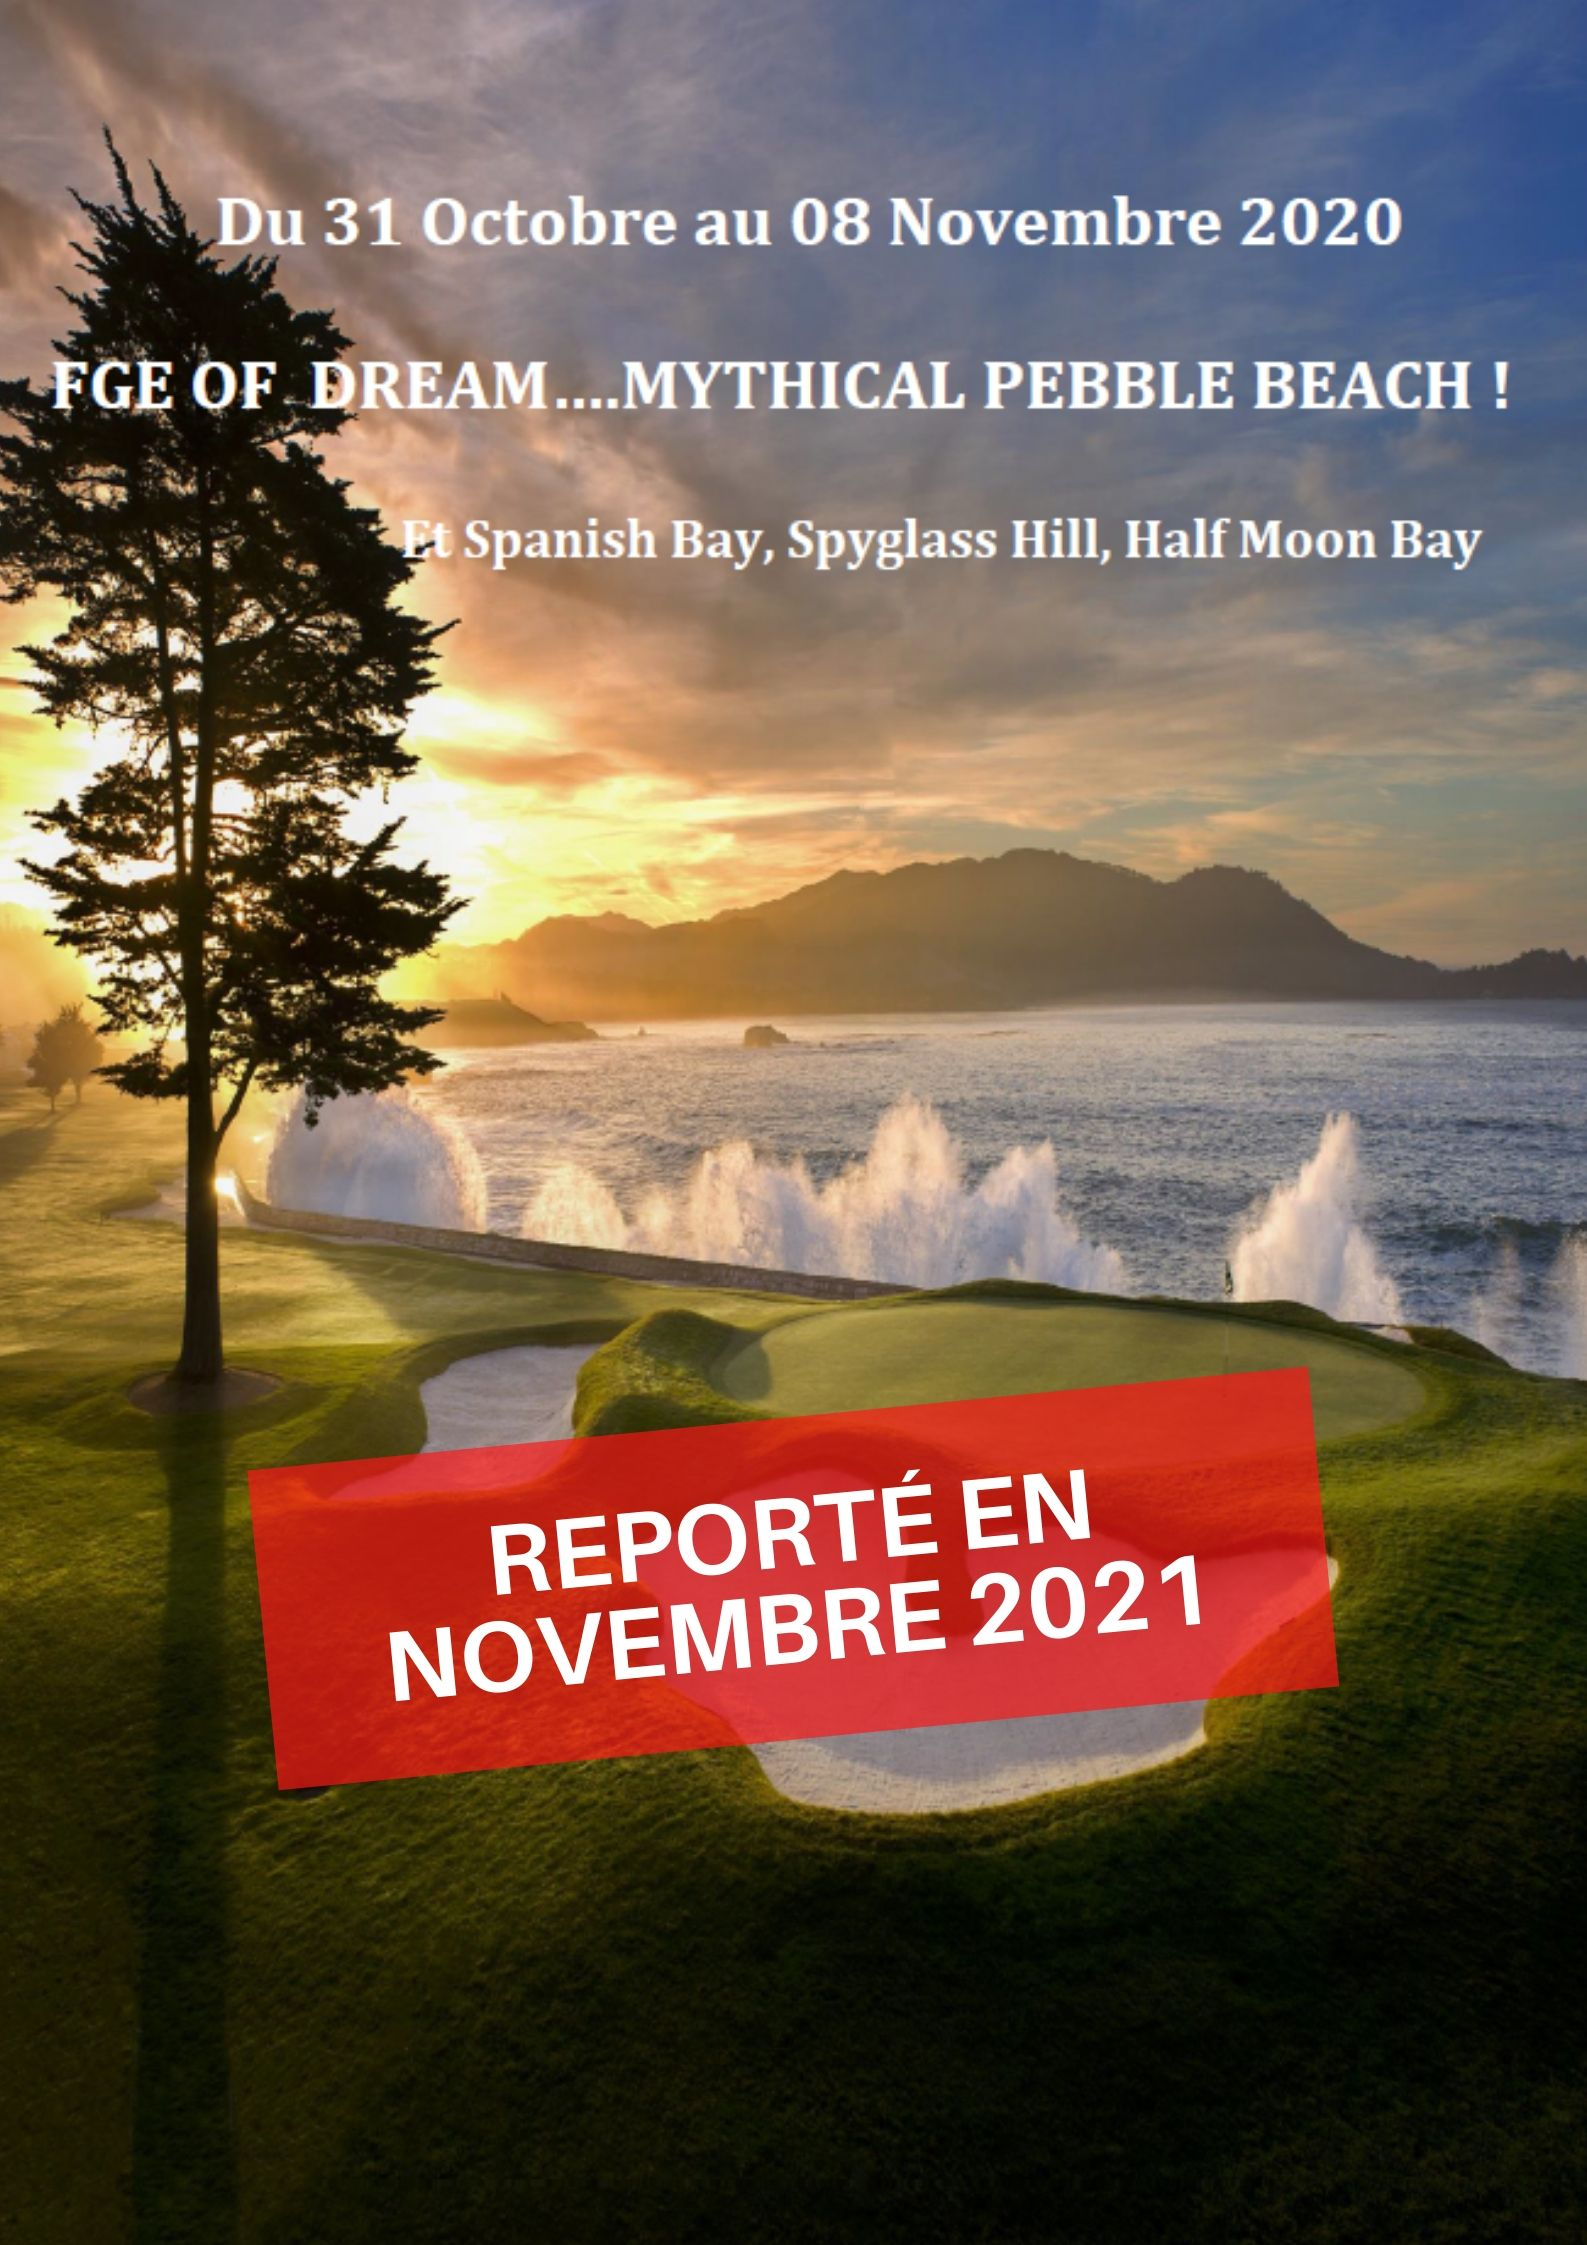 FGE Pebble Beach